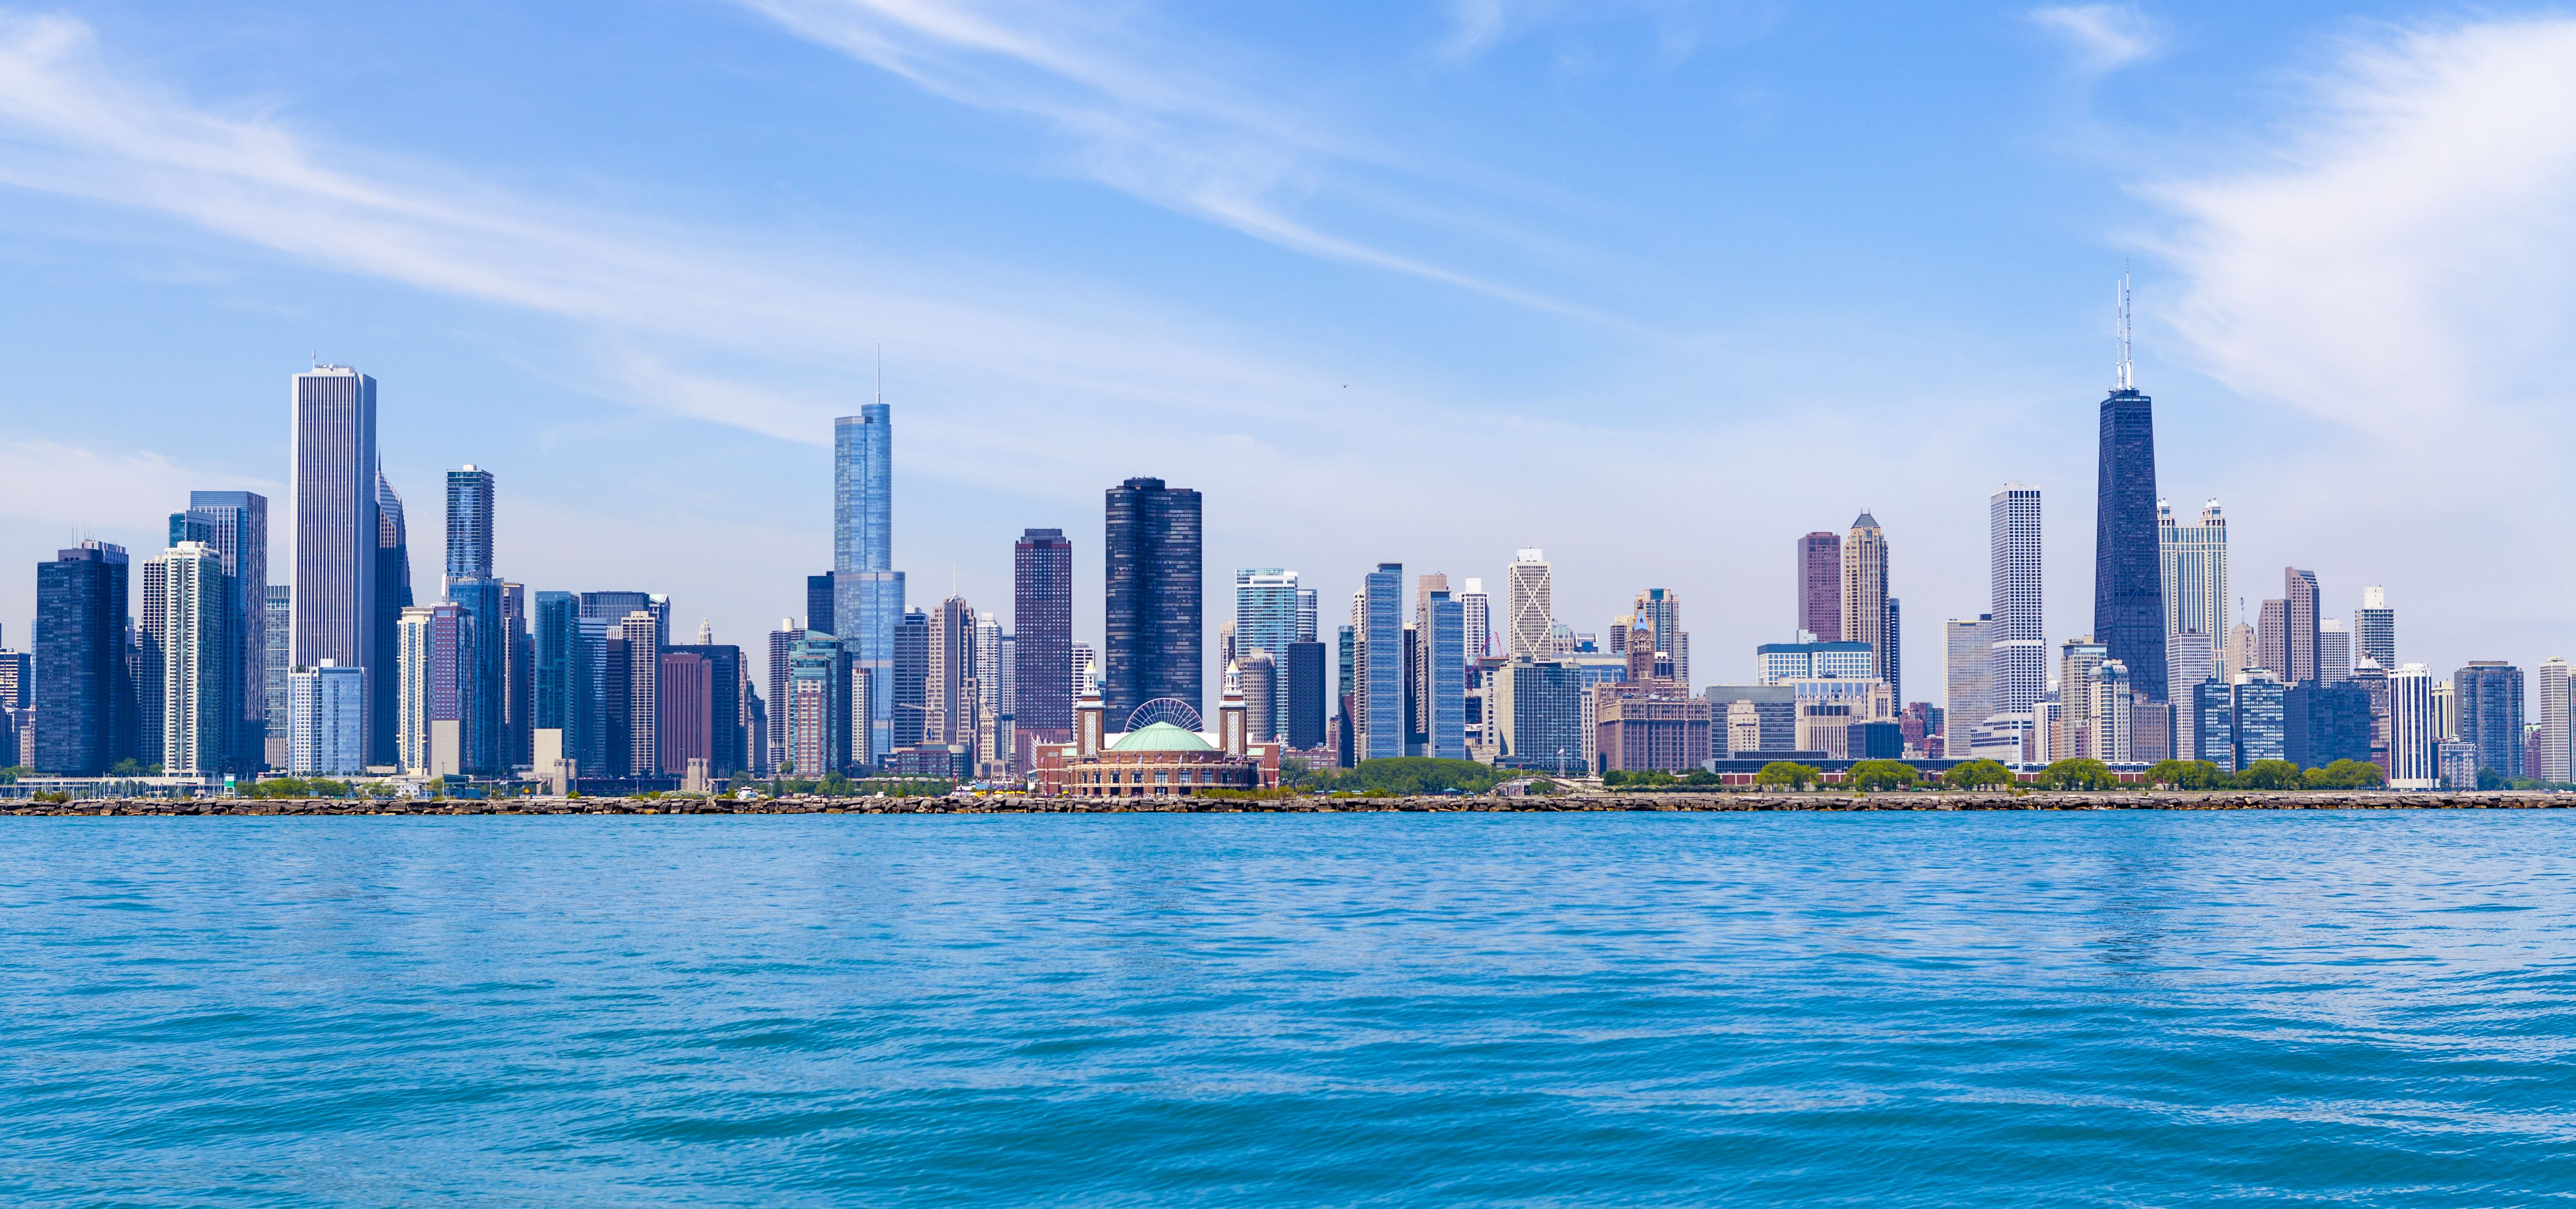 Chicago Wastewater Bonds